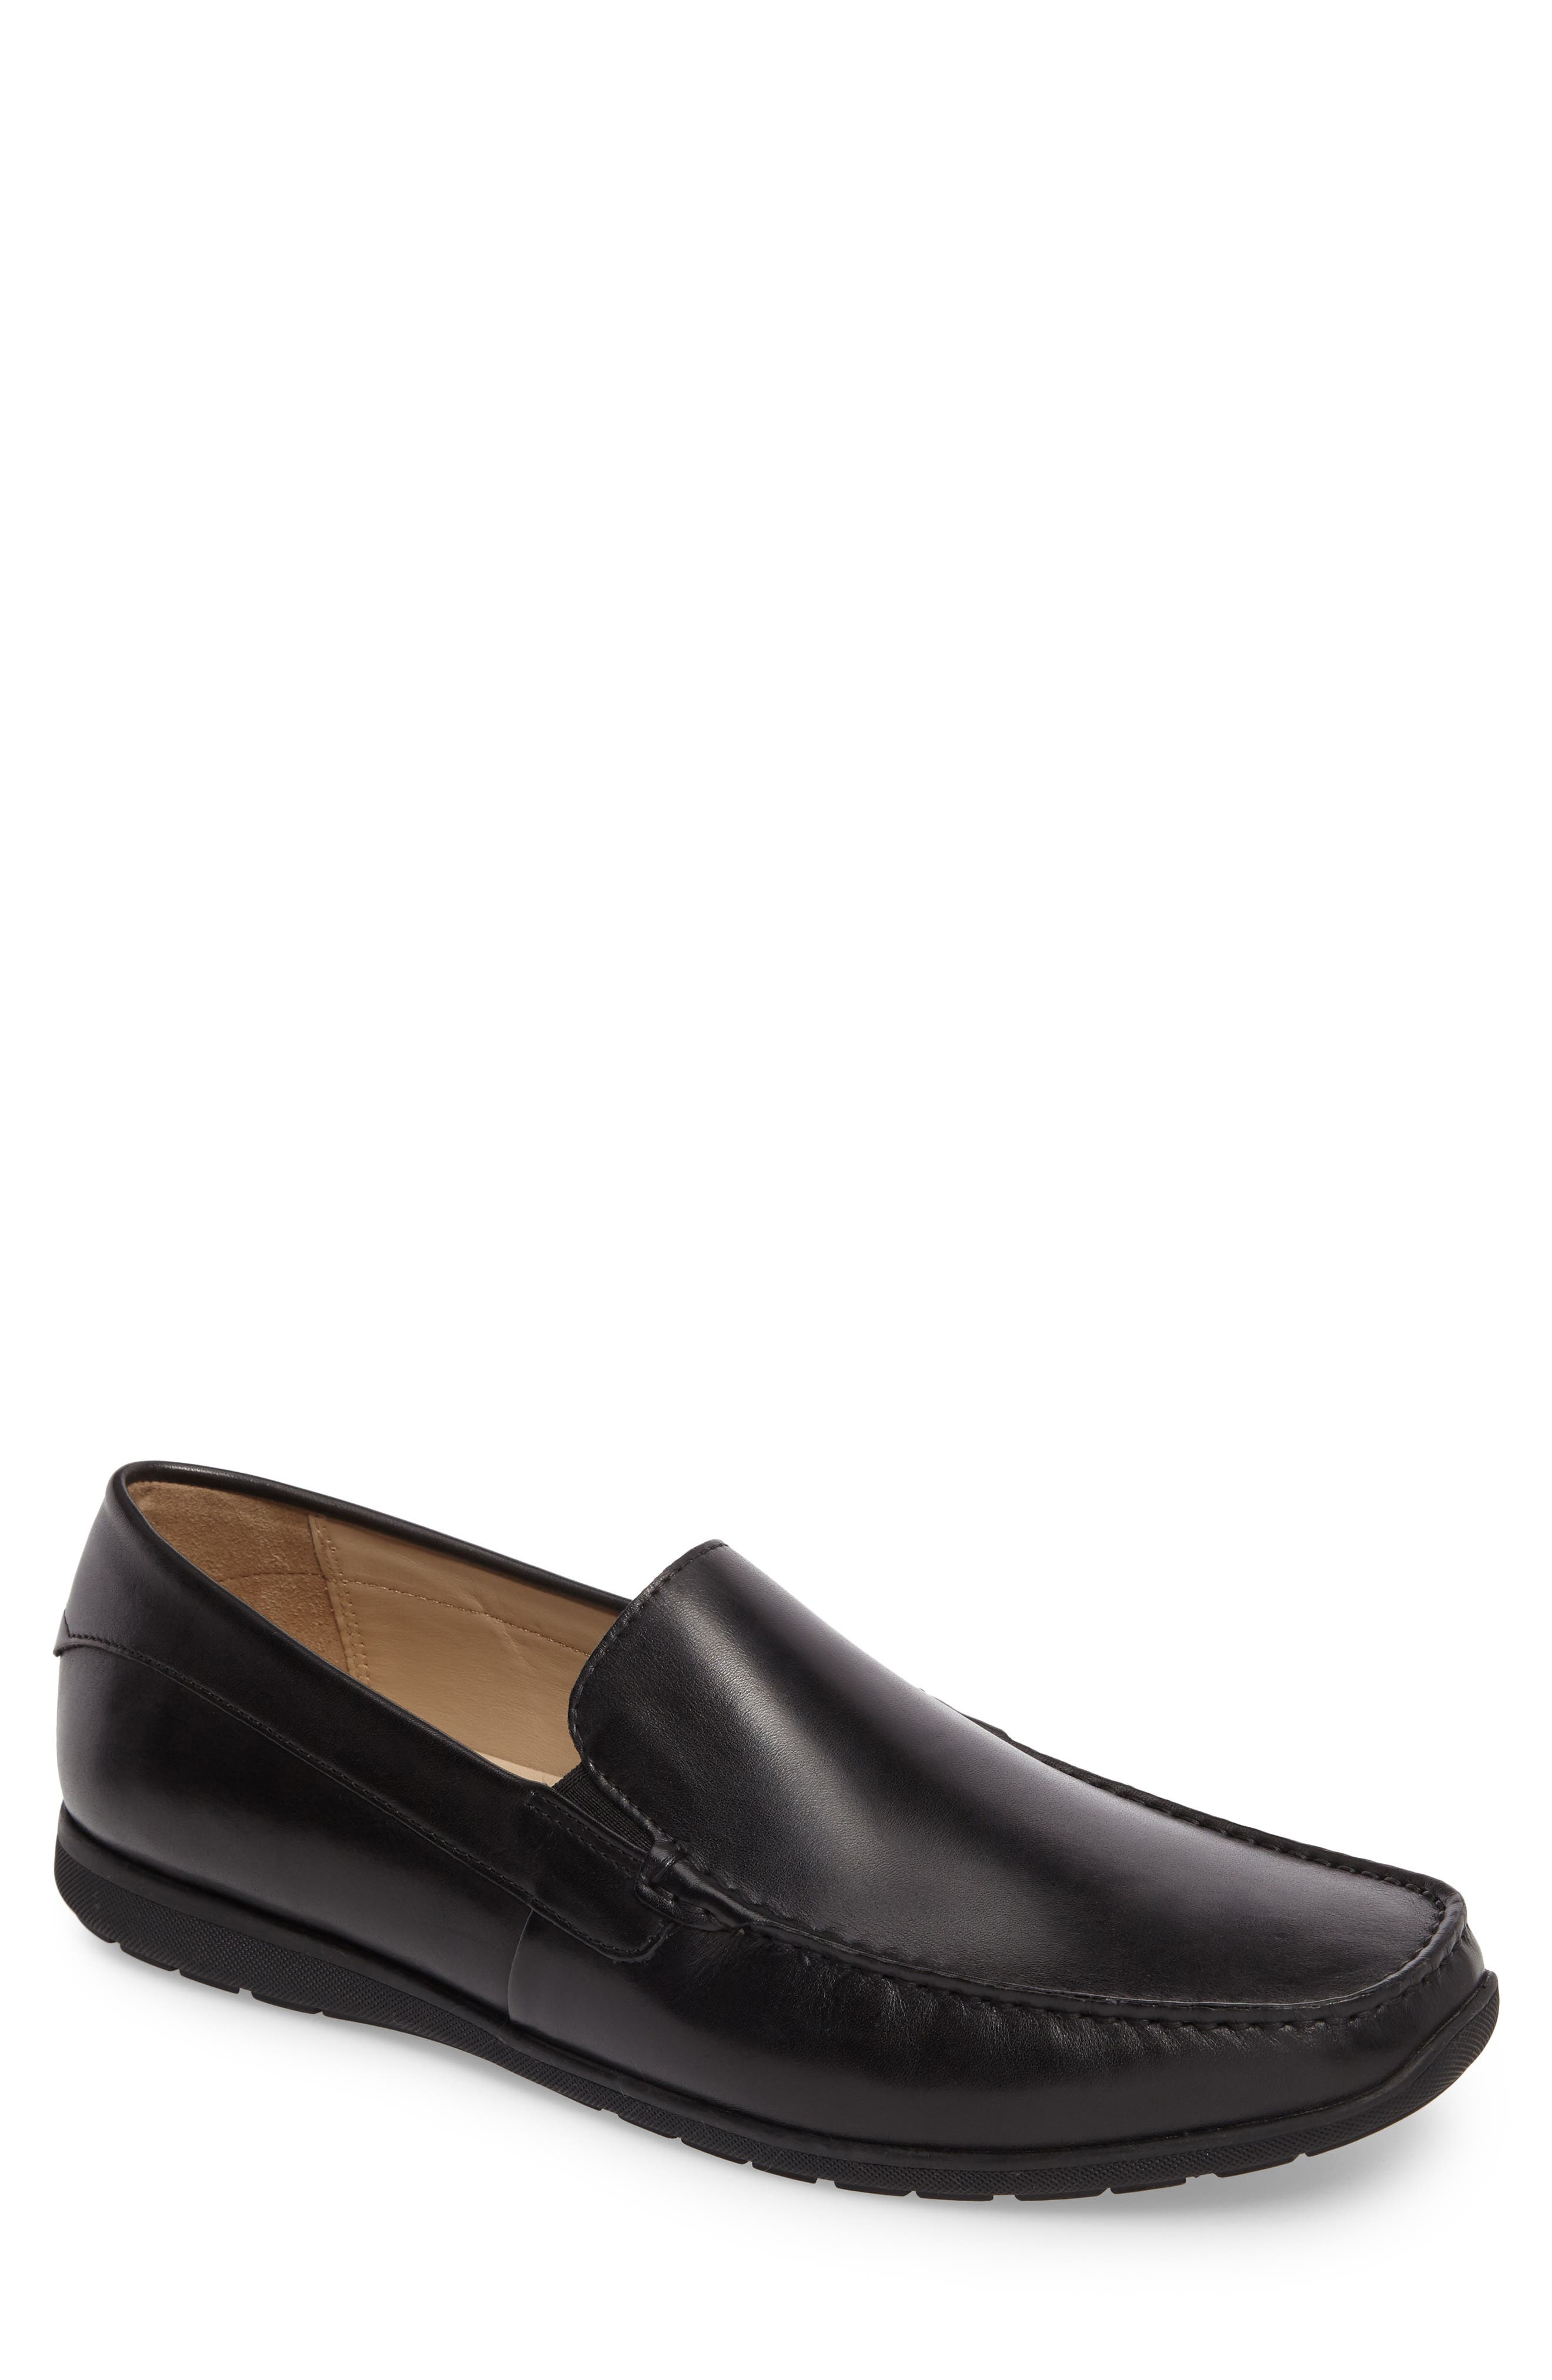 Classic Loafer,                         Main,                         color, Black Leather